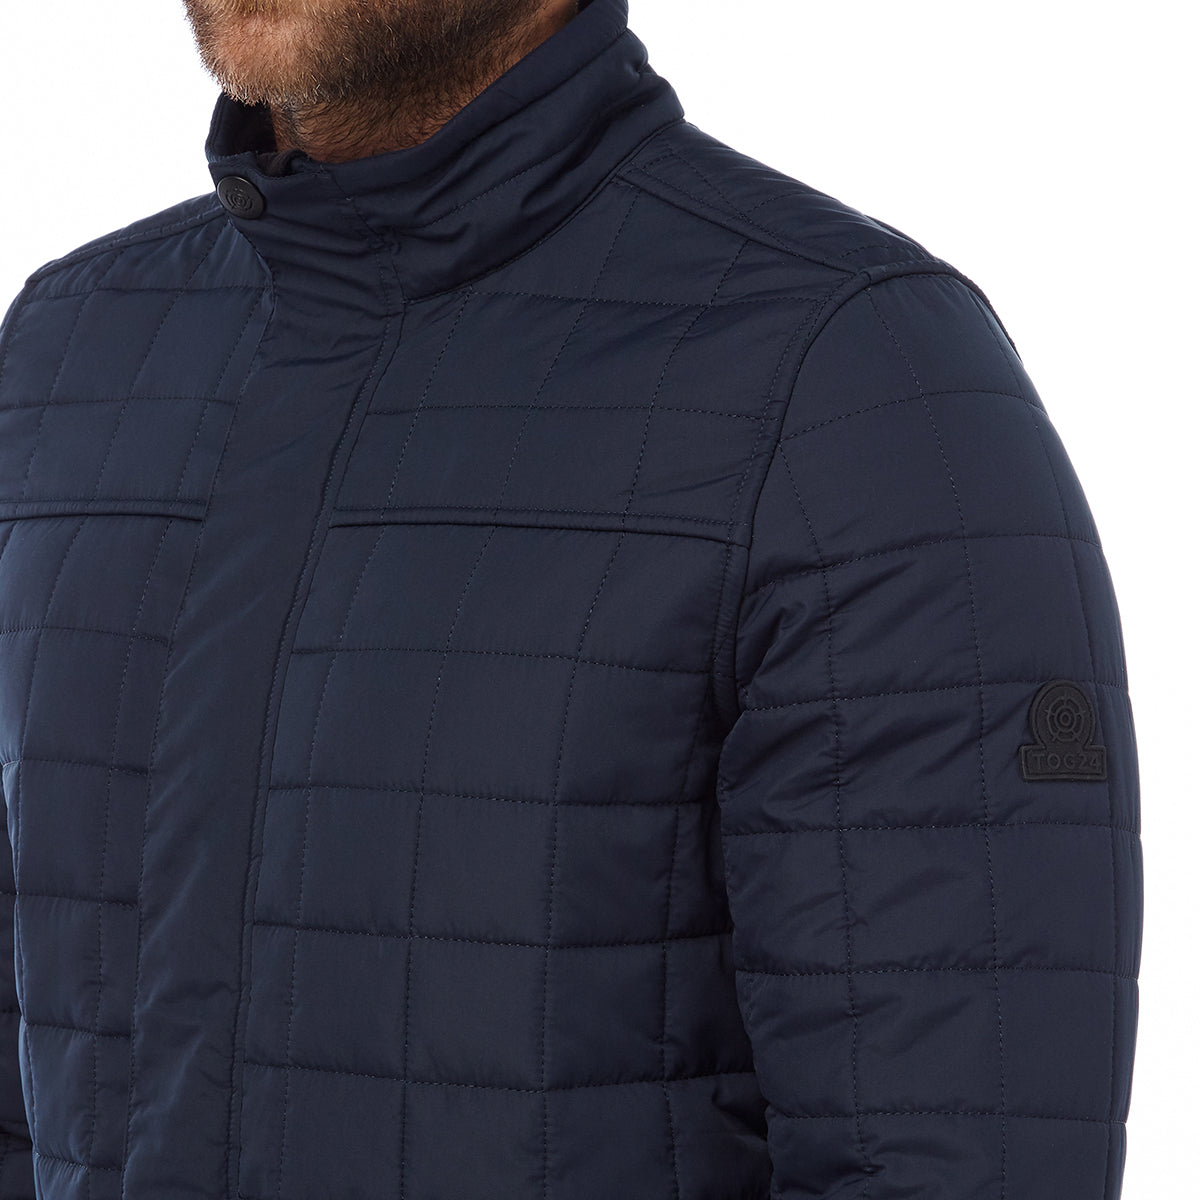 Dearne Mens TCZ Thermal Jacket - Navy image 4